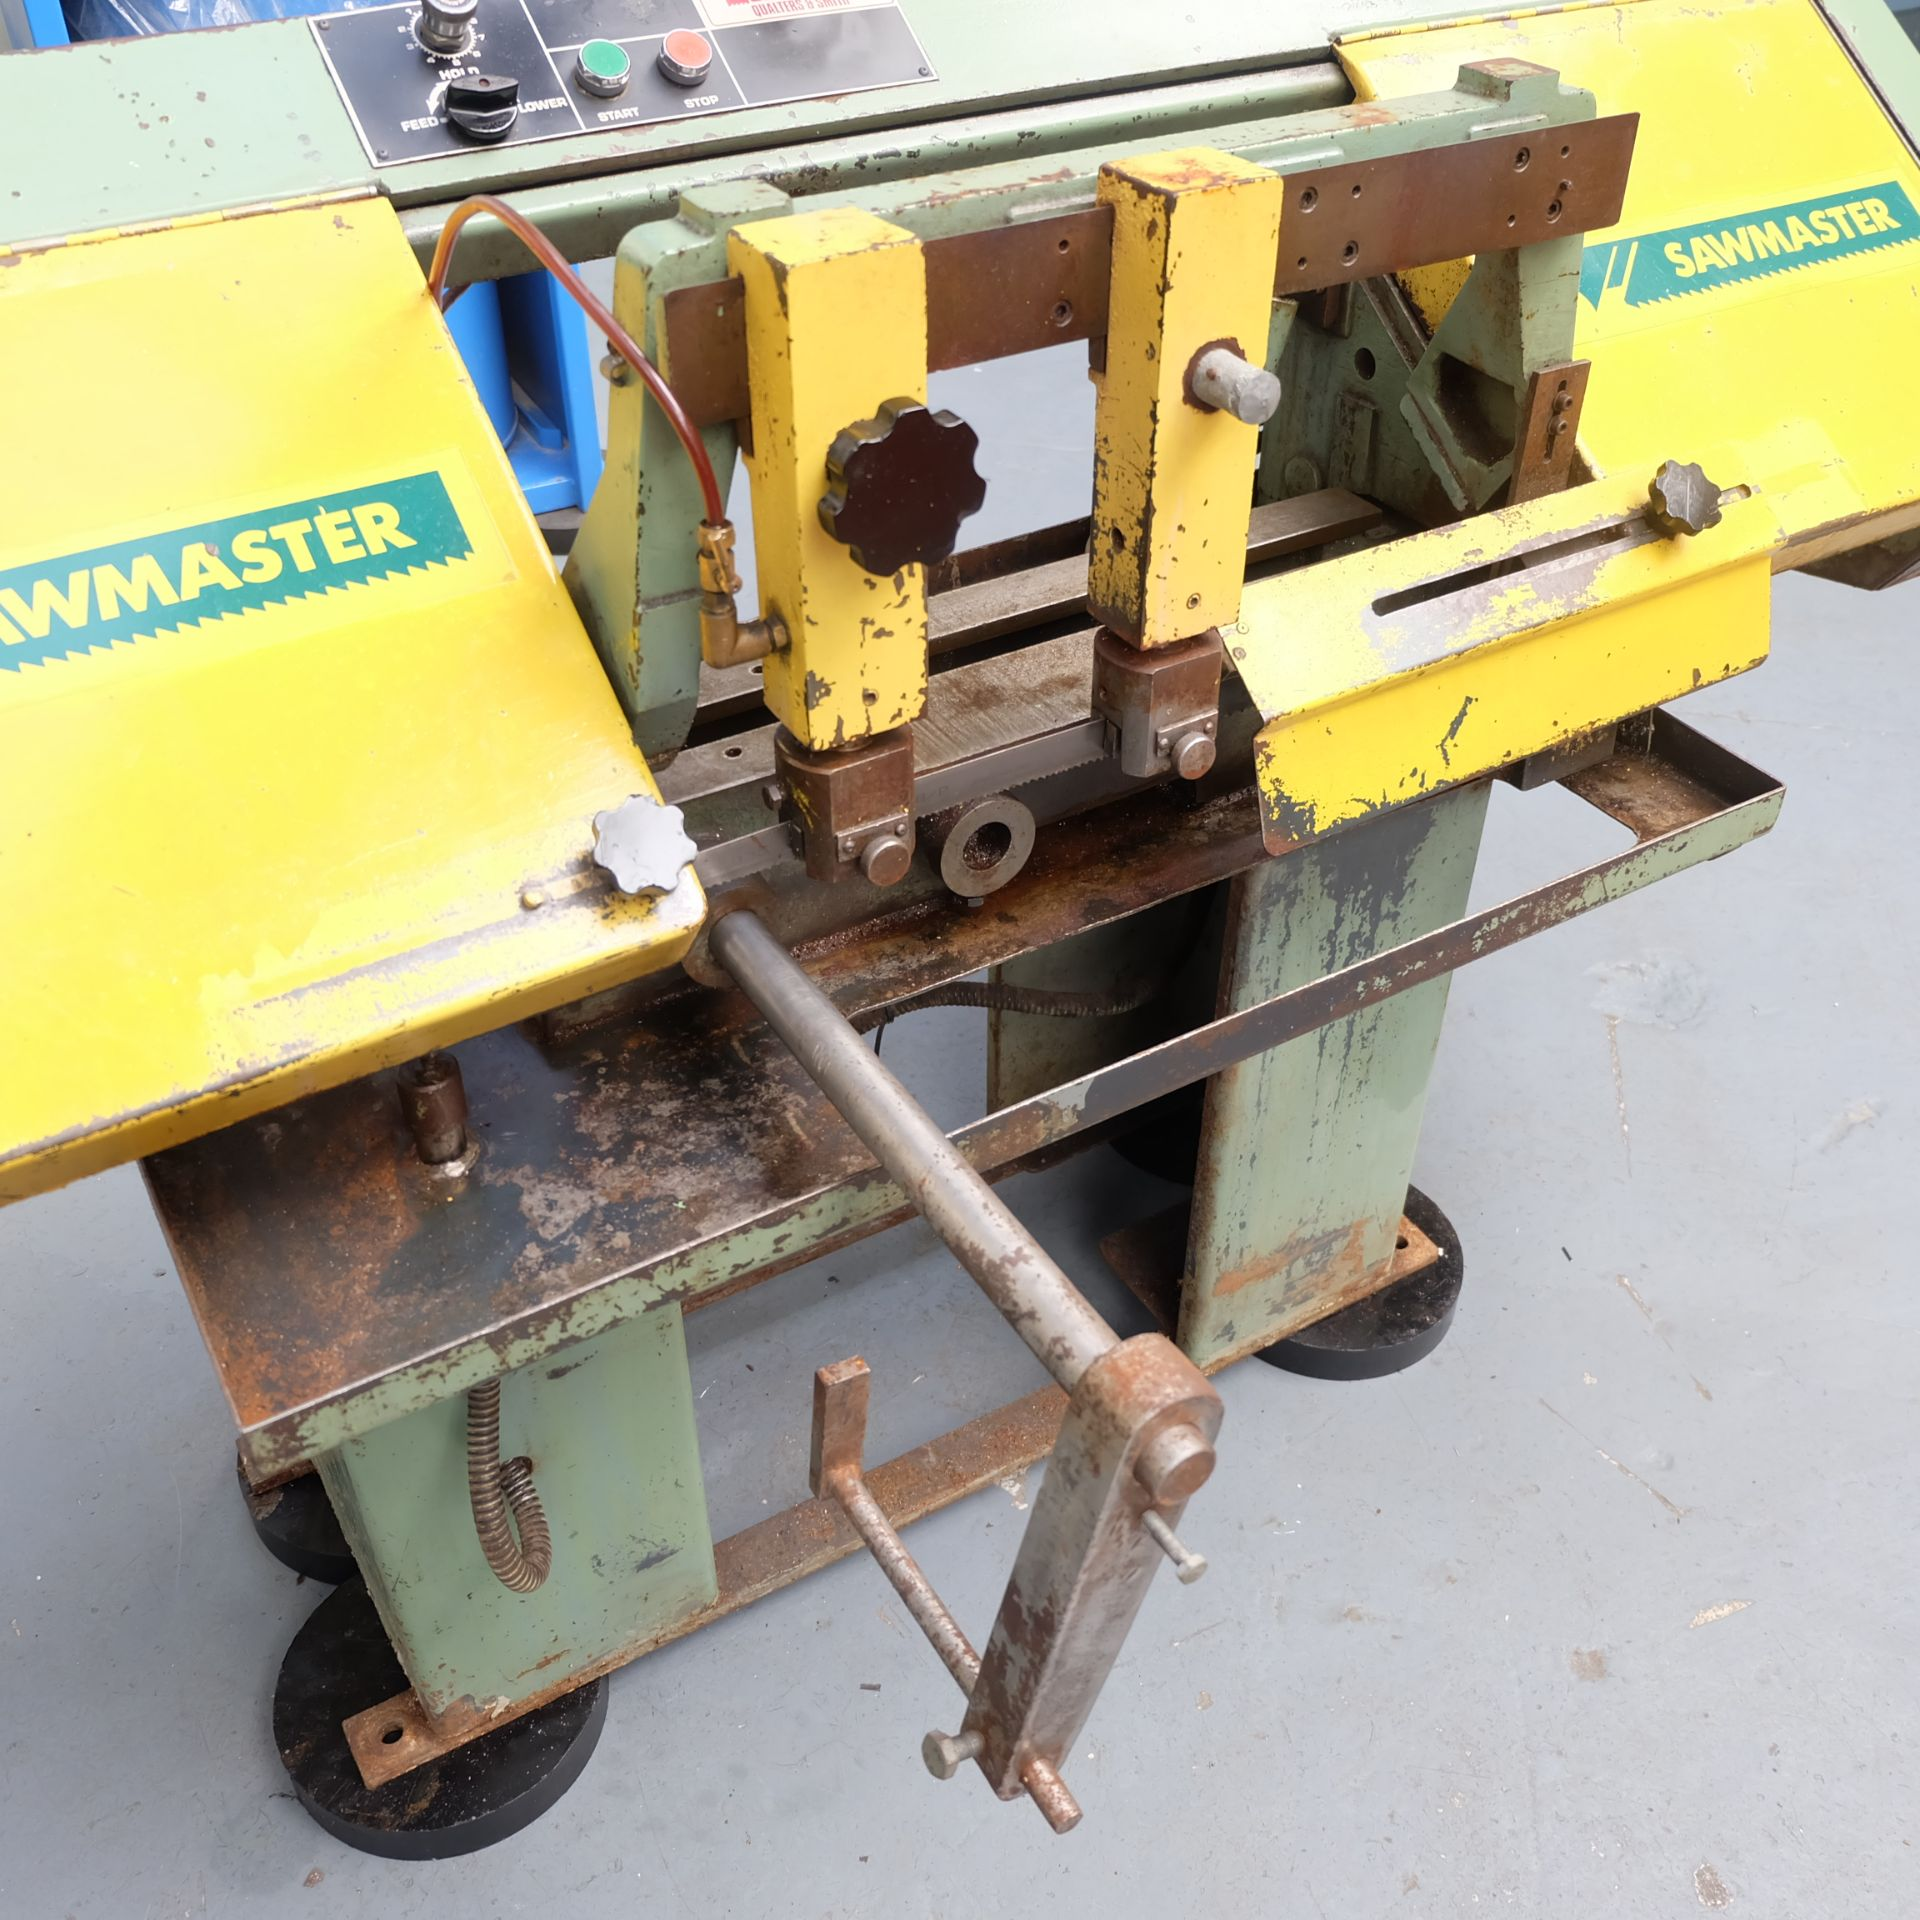 Qualters & Smith Model 180 Sawmaster Horizontal Bandsaw. Capacity Approx 180mm. - Image 3 of 5